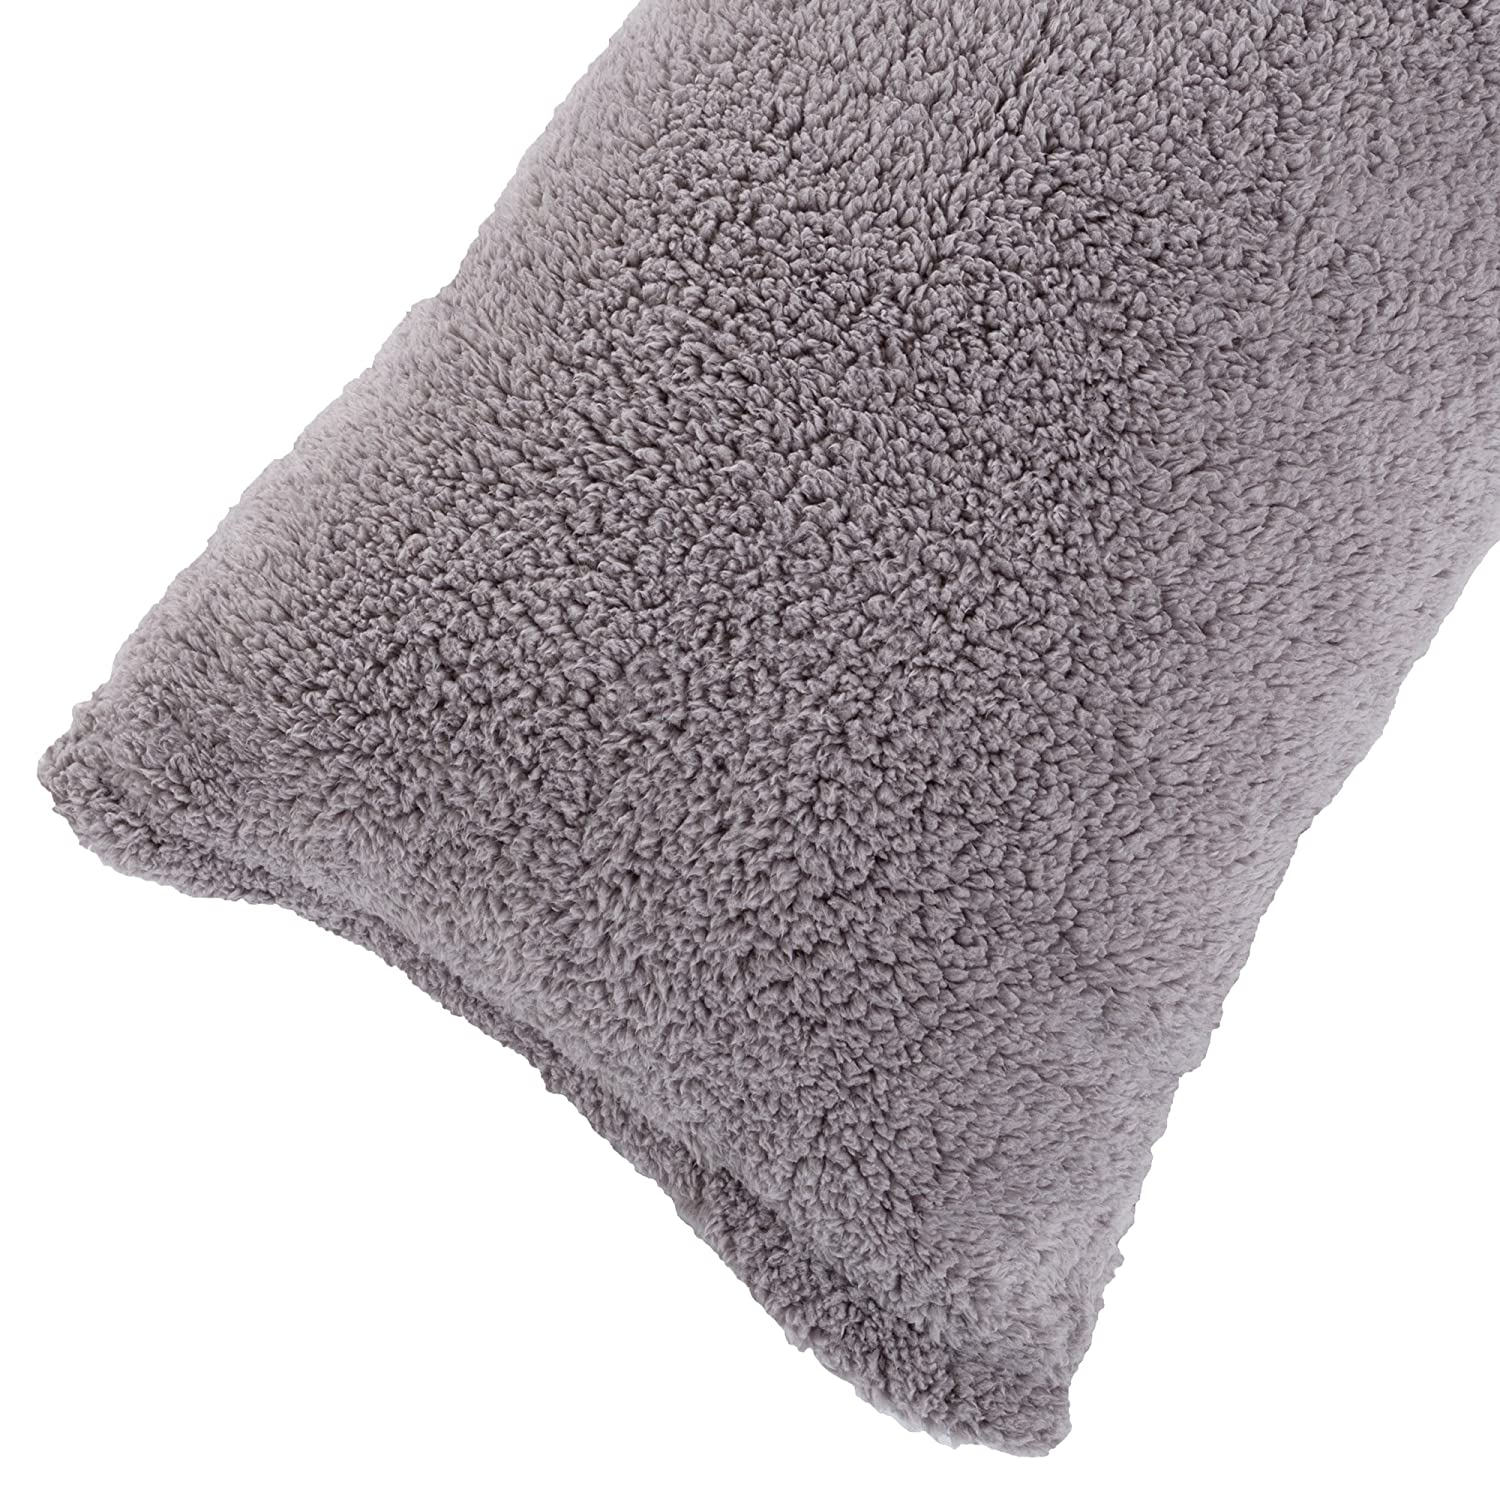 Sherpa Body Pillow Cover.Body Pillow Cover Sherpa With Side Zipper By Lavish Home 18 X52 Grey